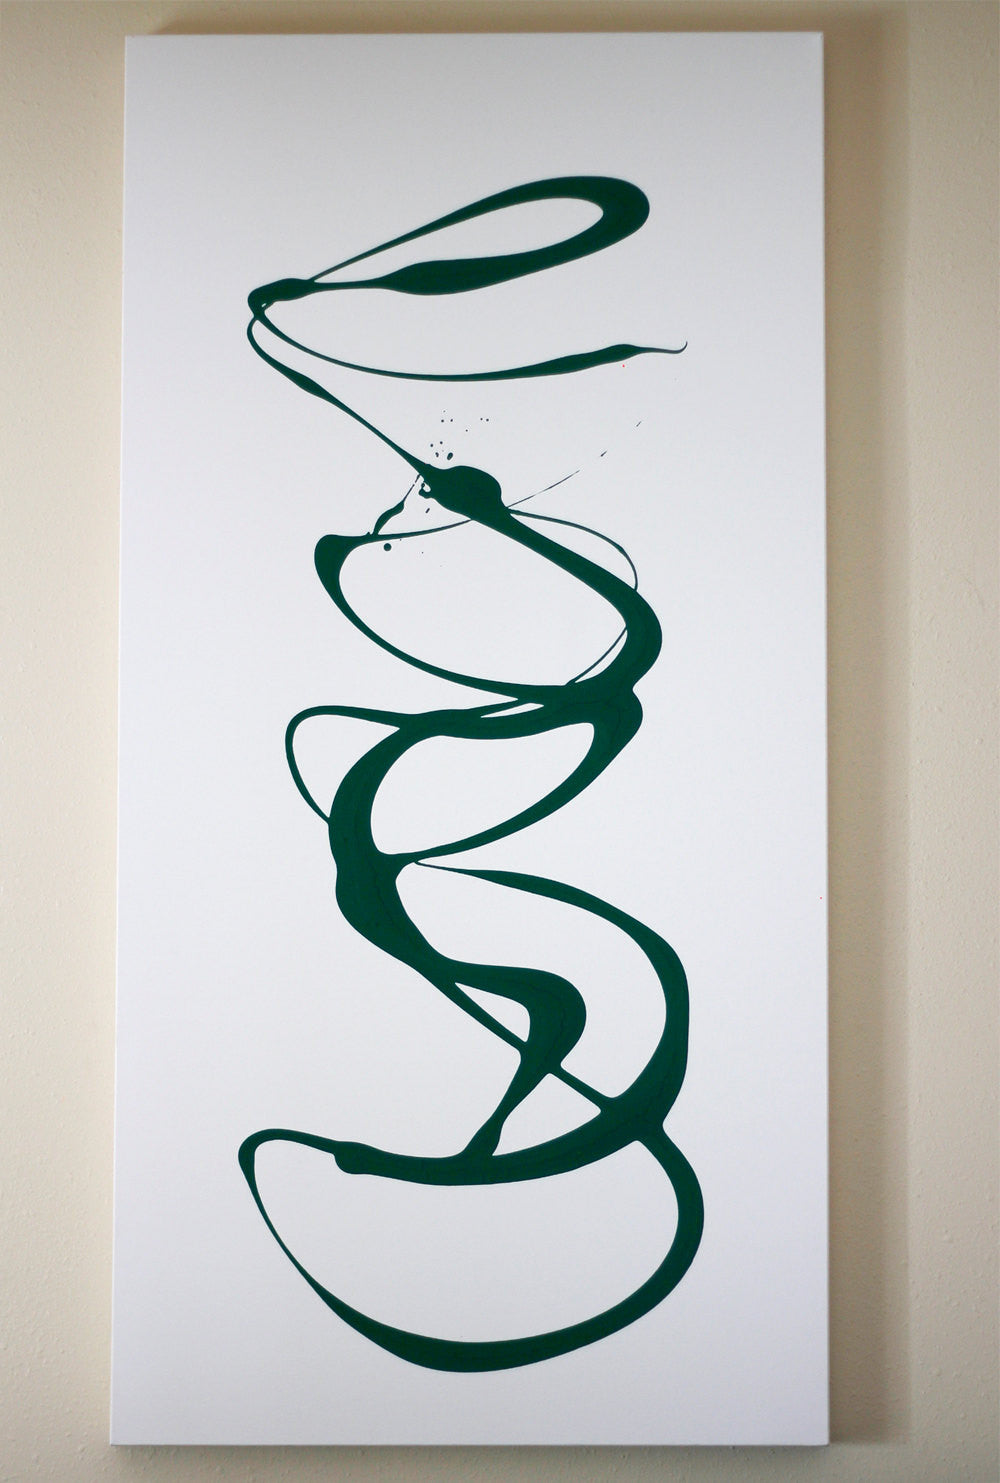 "24x48 Original Artwork ""Infini"" on canvas by Le Fou"